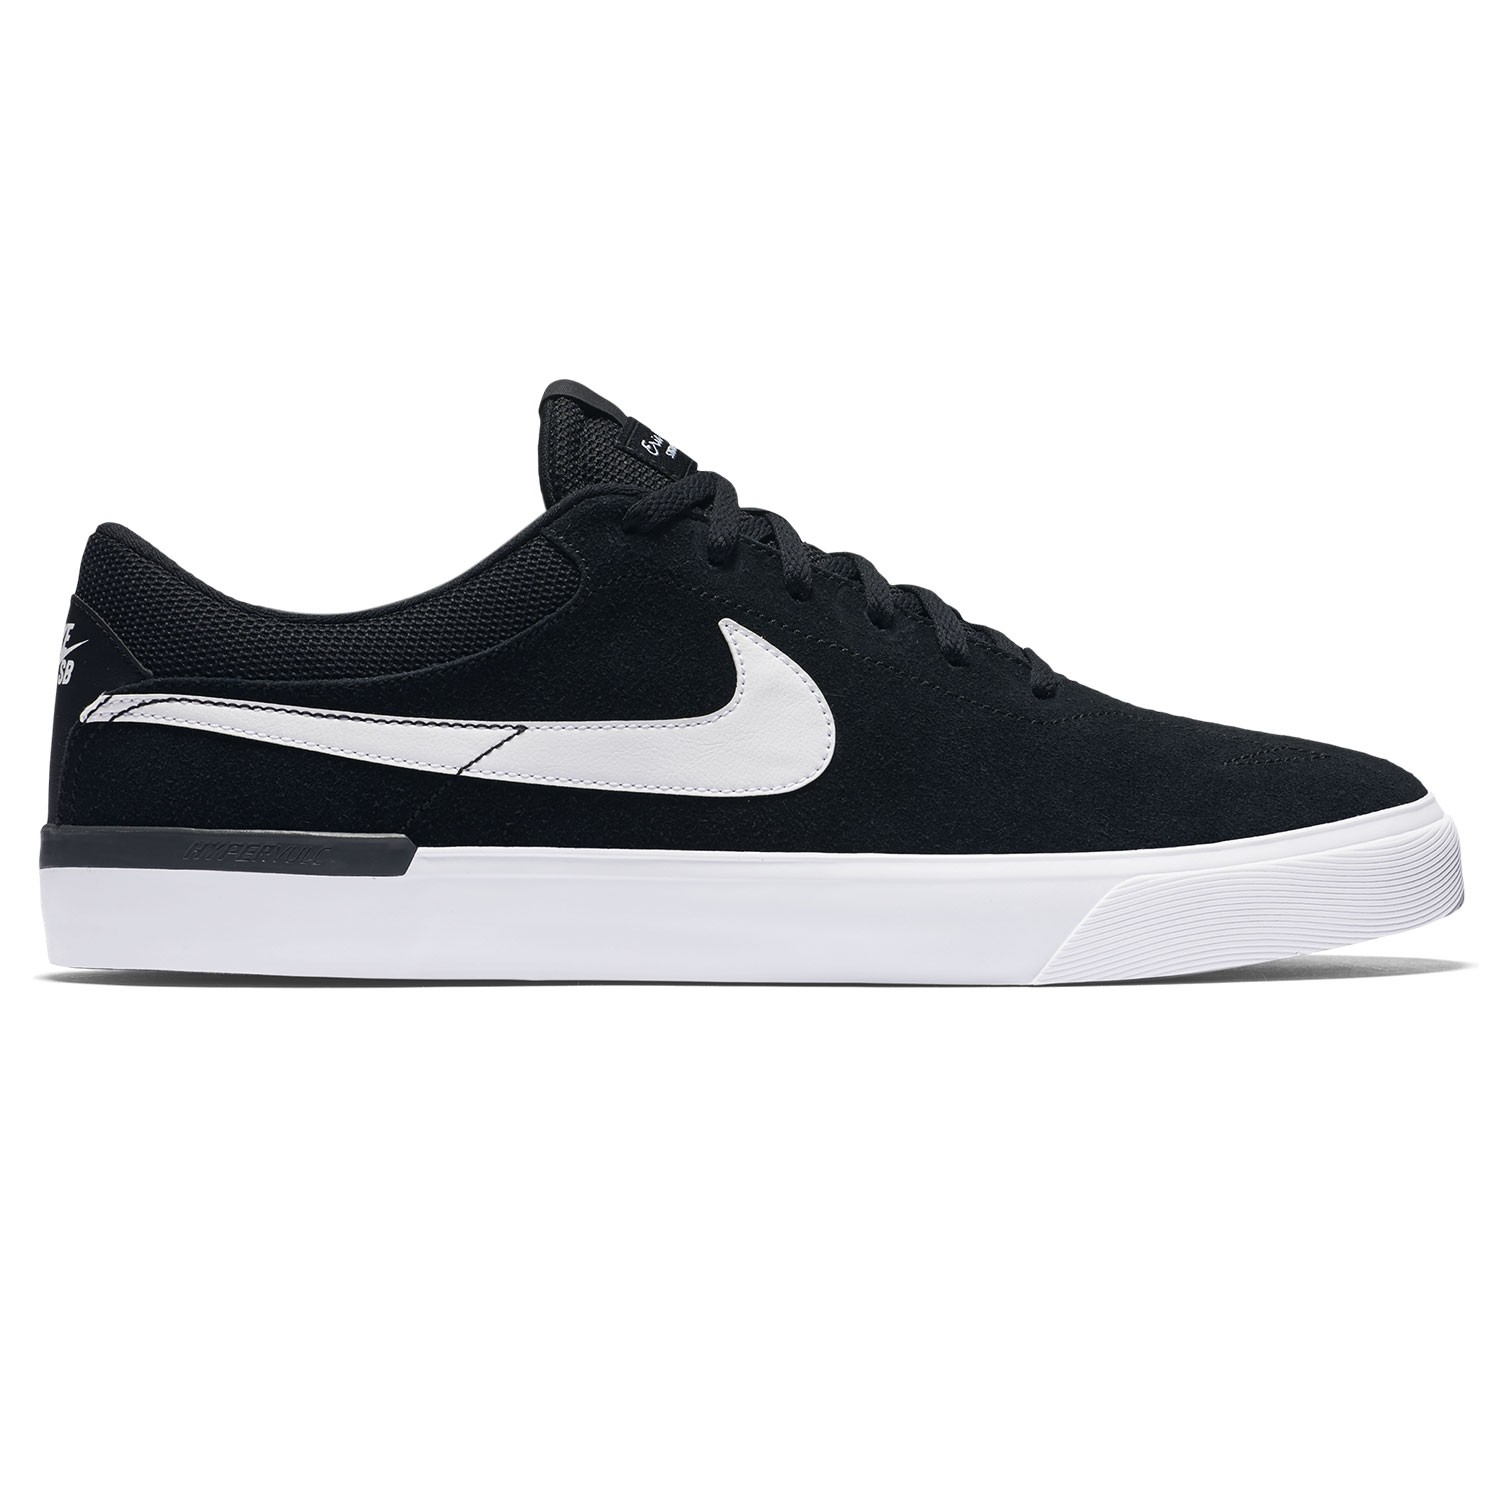 Tenisky Nike SB Hypervulc Erik Koston black/white-dark grey